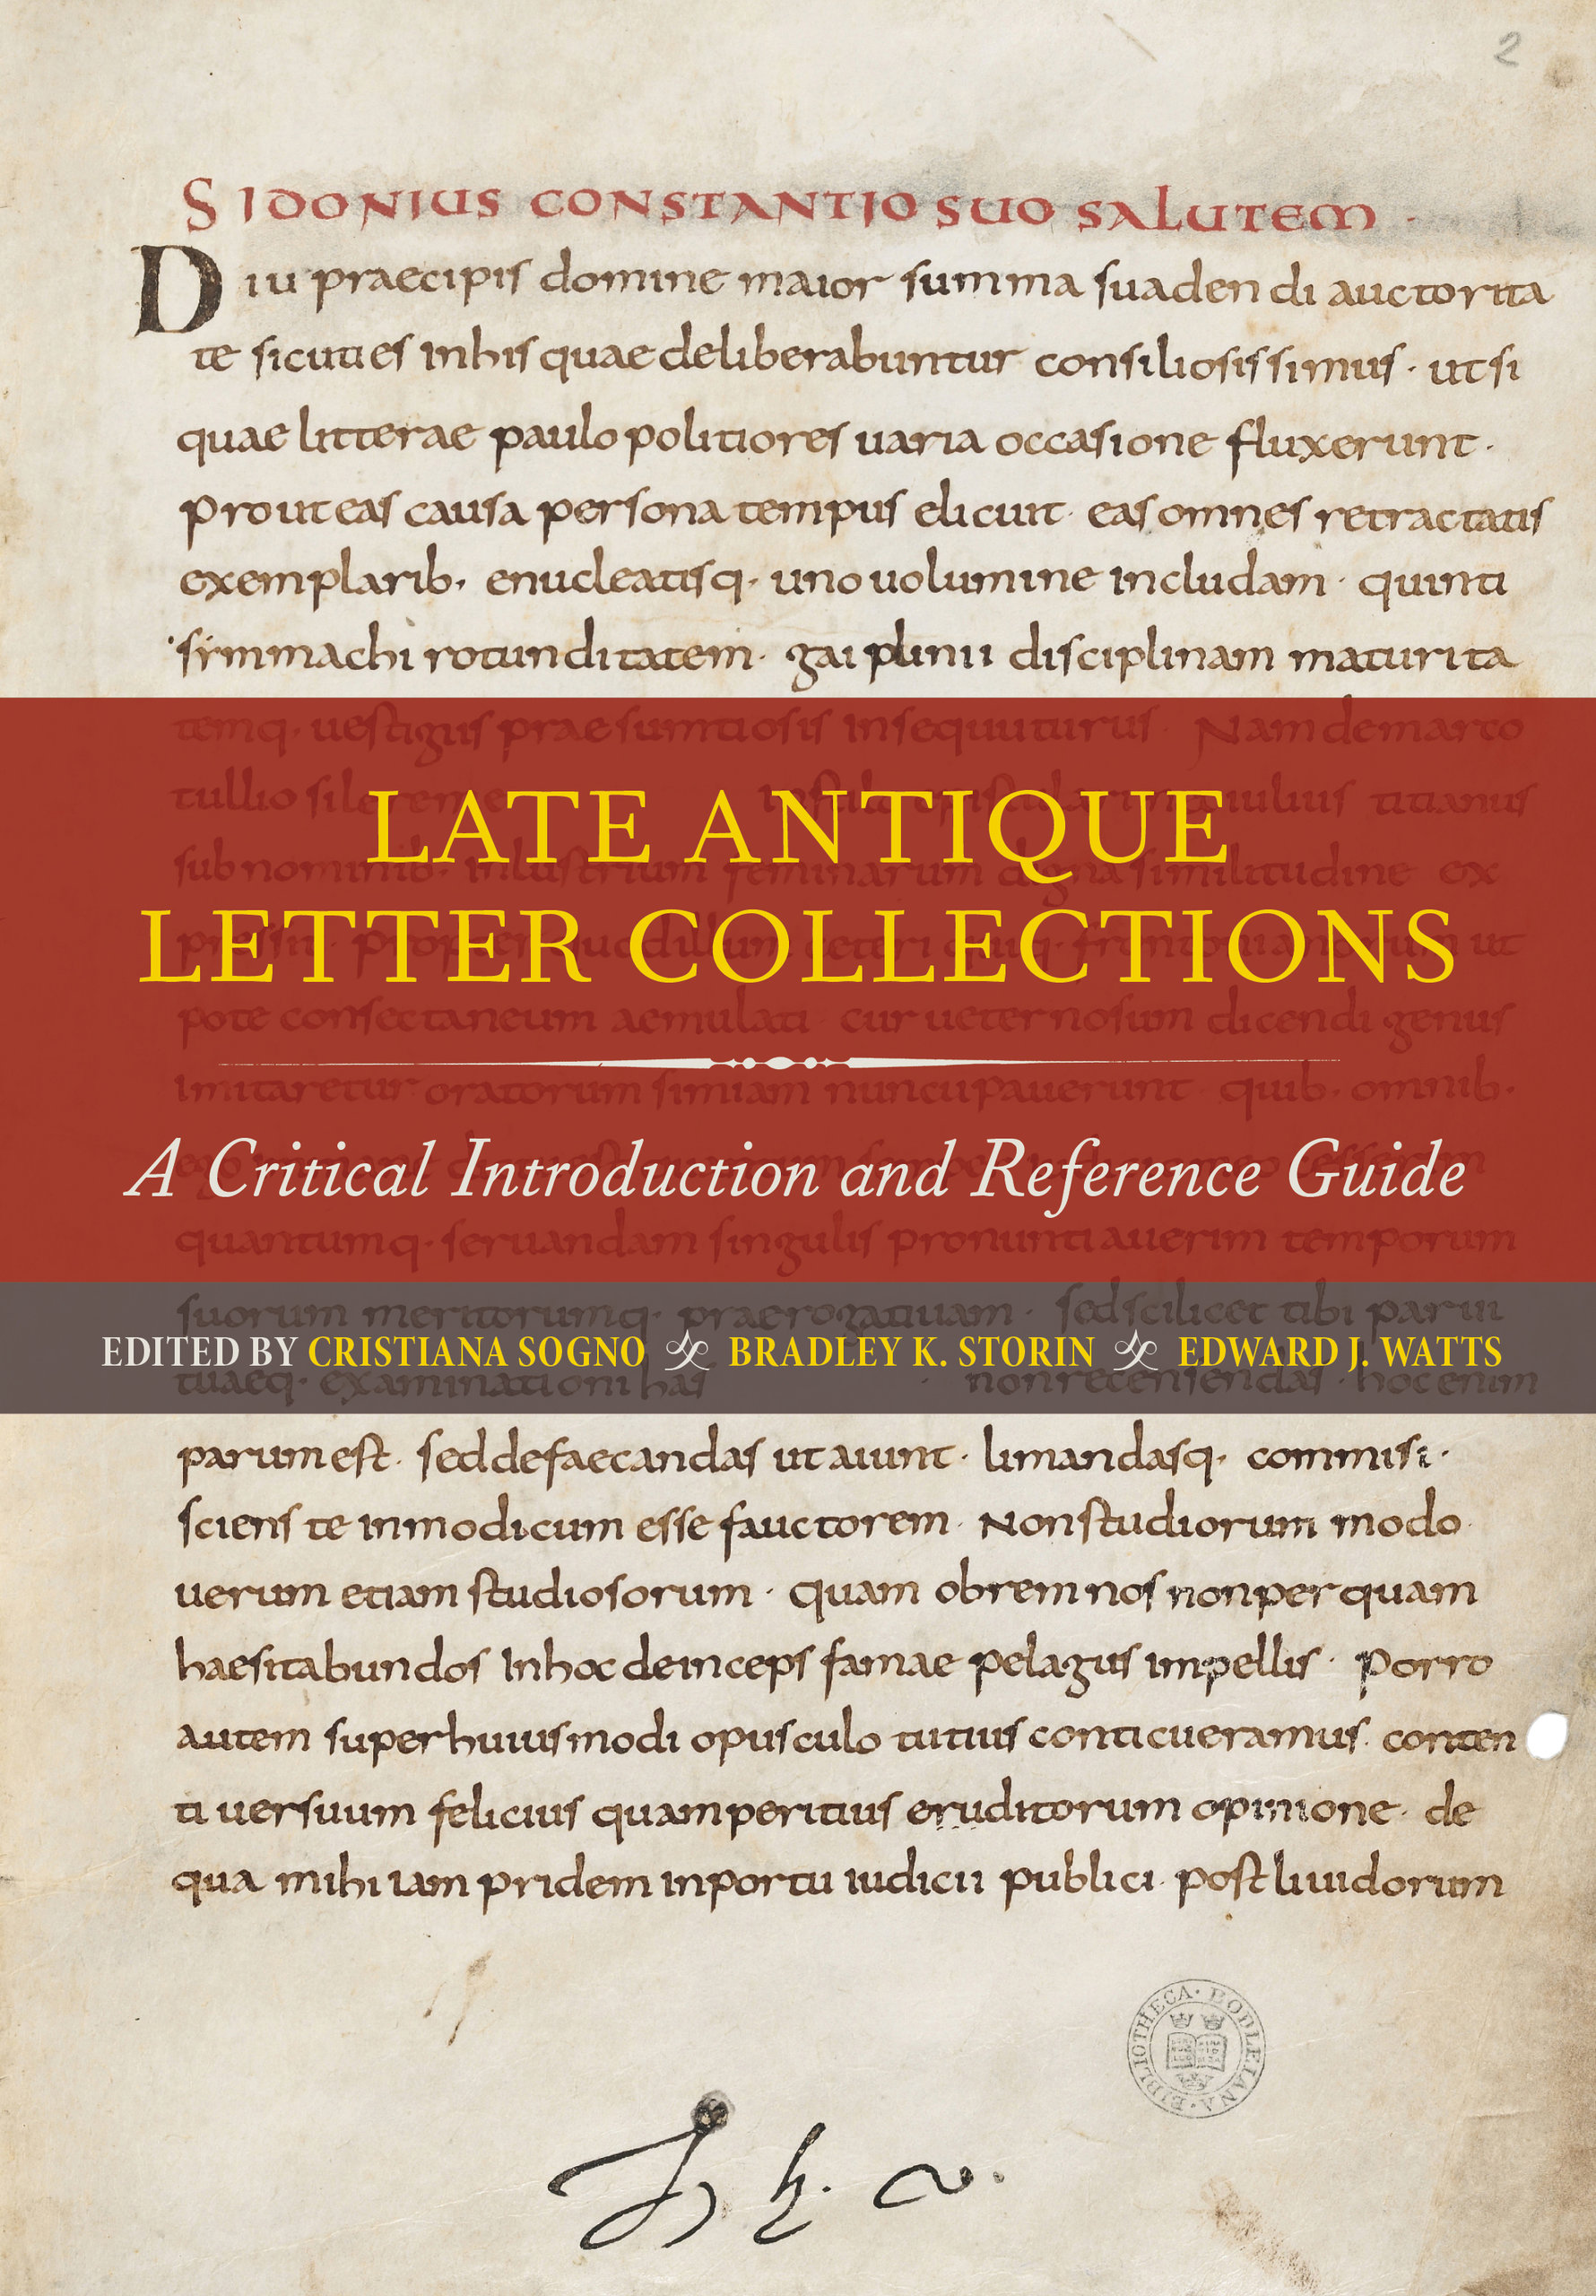 Late antique letter collections by cristiana sogno bradley k download cover image fandeluxe Choice Image